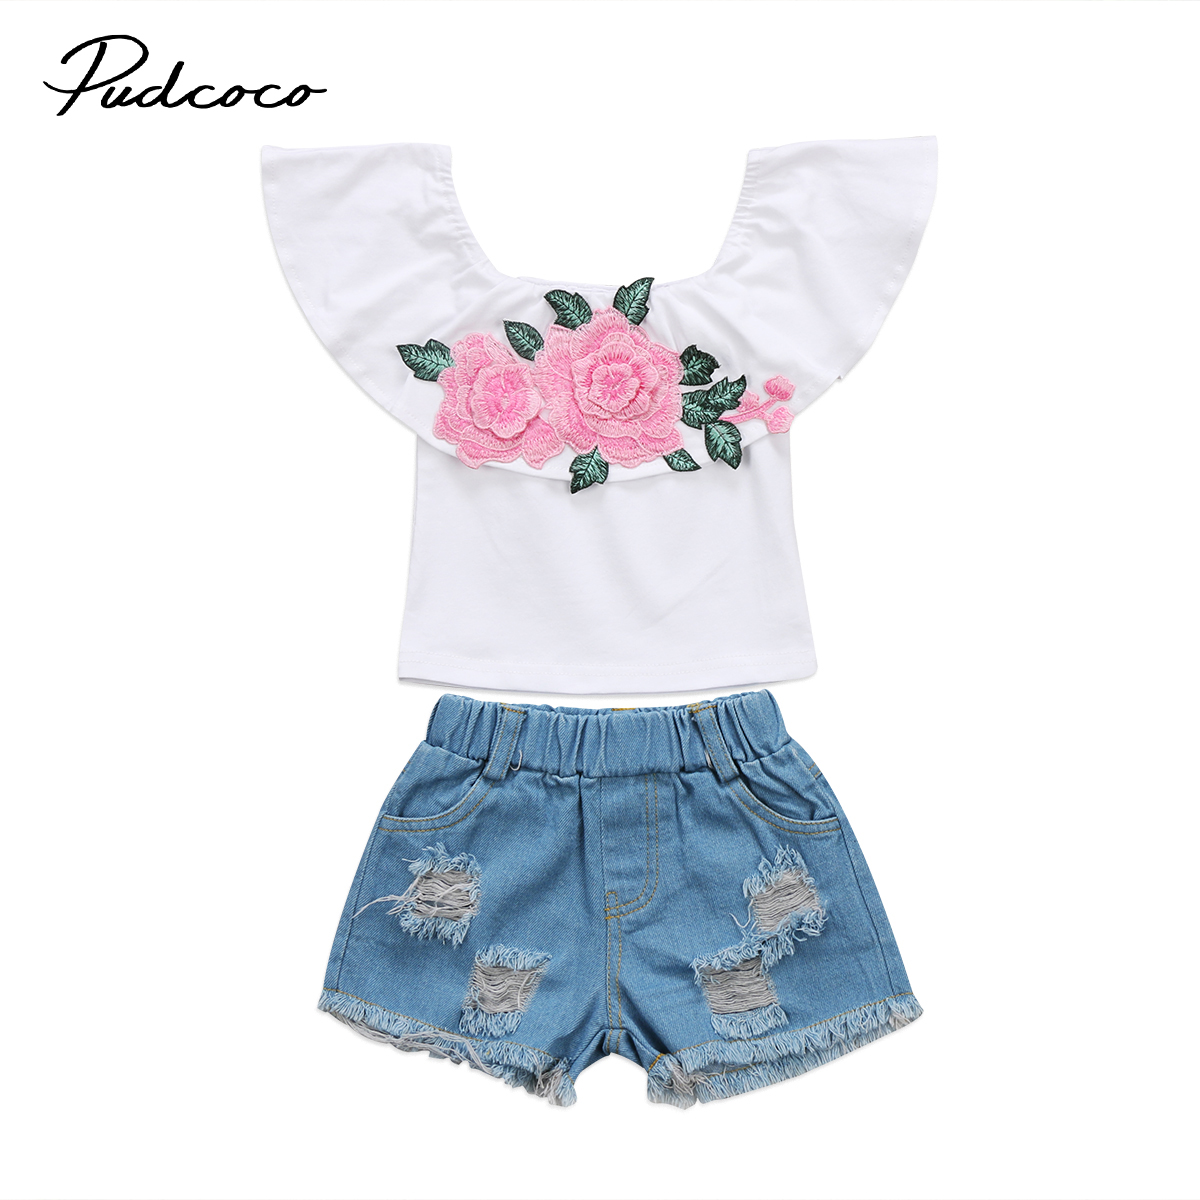 Fashion Kids Baby Girls Embroidery Floral Shirts Off Shoulder Tops Ripped Shorts Denim Jeans 2pcs Outfits Set Clothes Summer summer casual denim newborn toddler baby girl clothing kids off shoulder crop tops shorts outfit clothes set